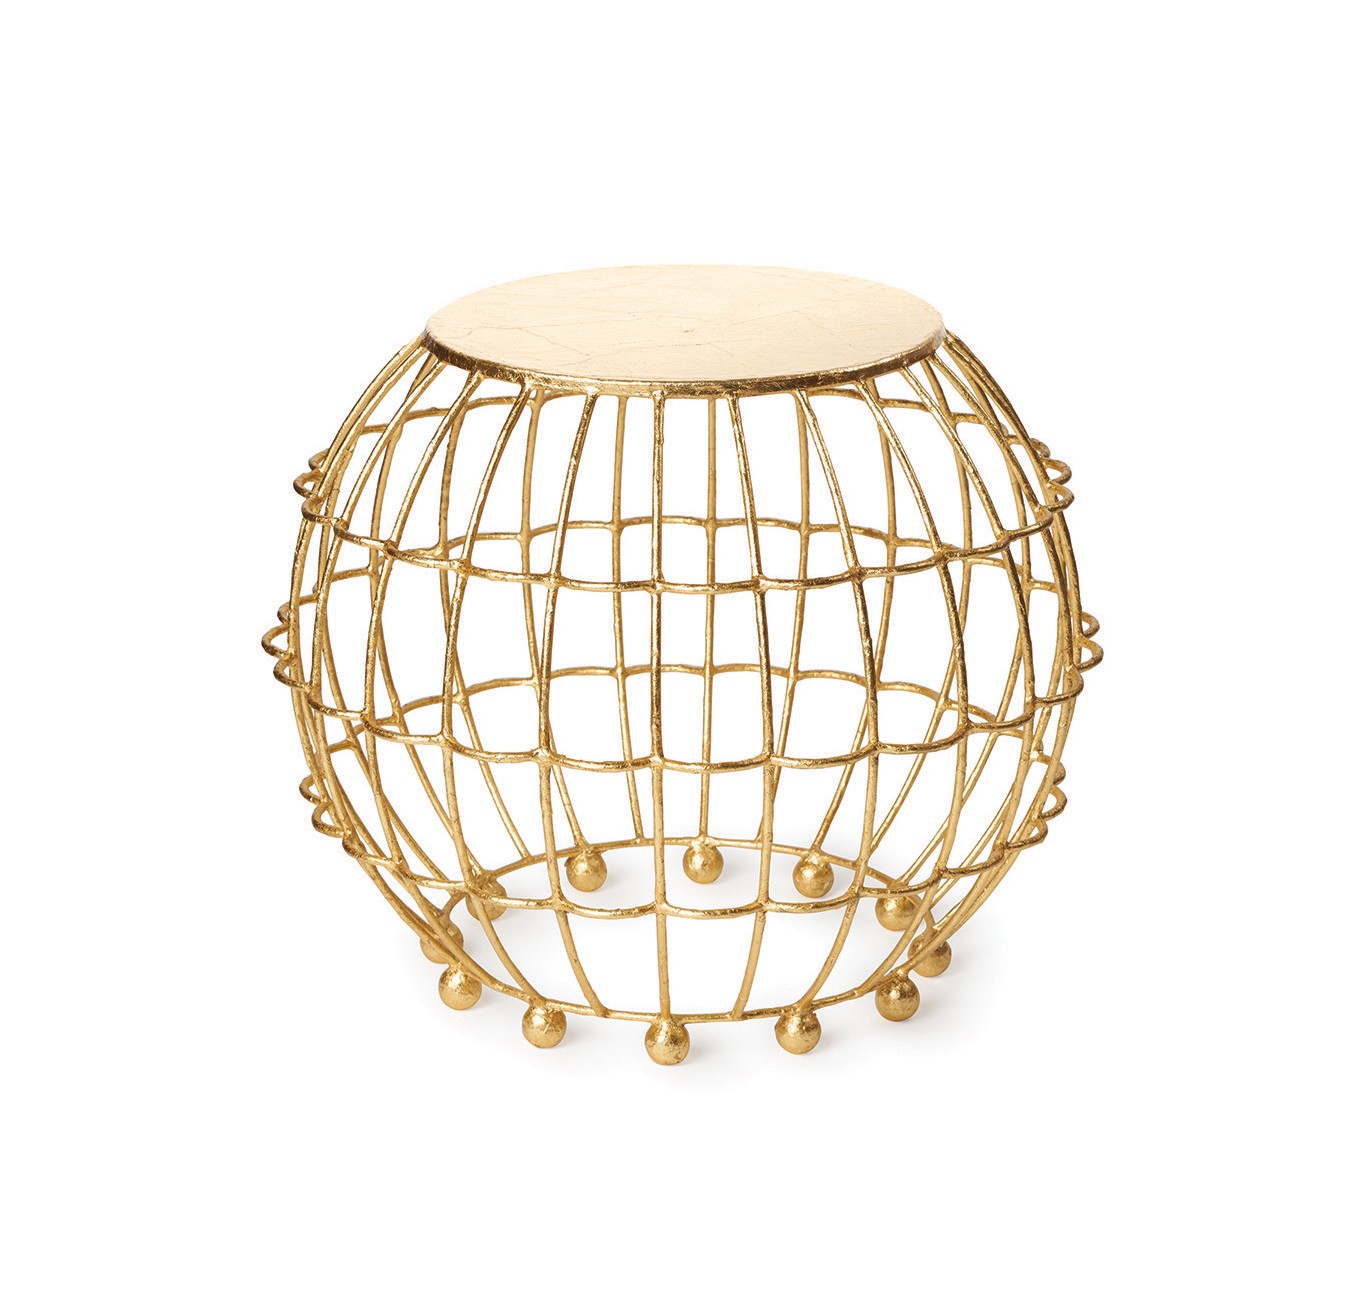 Profiles Image 15_Gilded-Cage-Large-Occ-Table-by-Fisher-Weisman-at-Profiles-New York